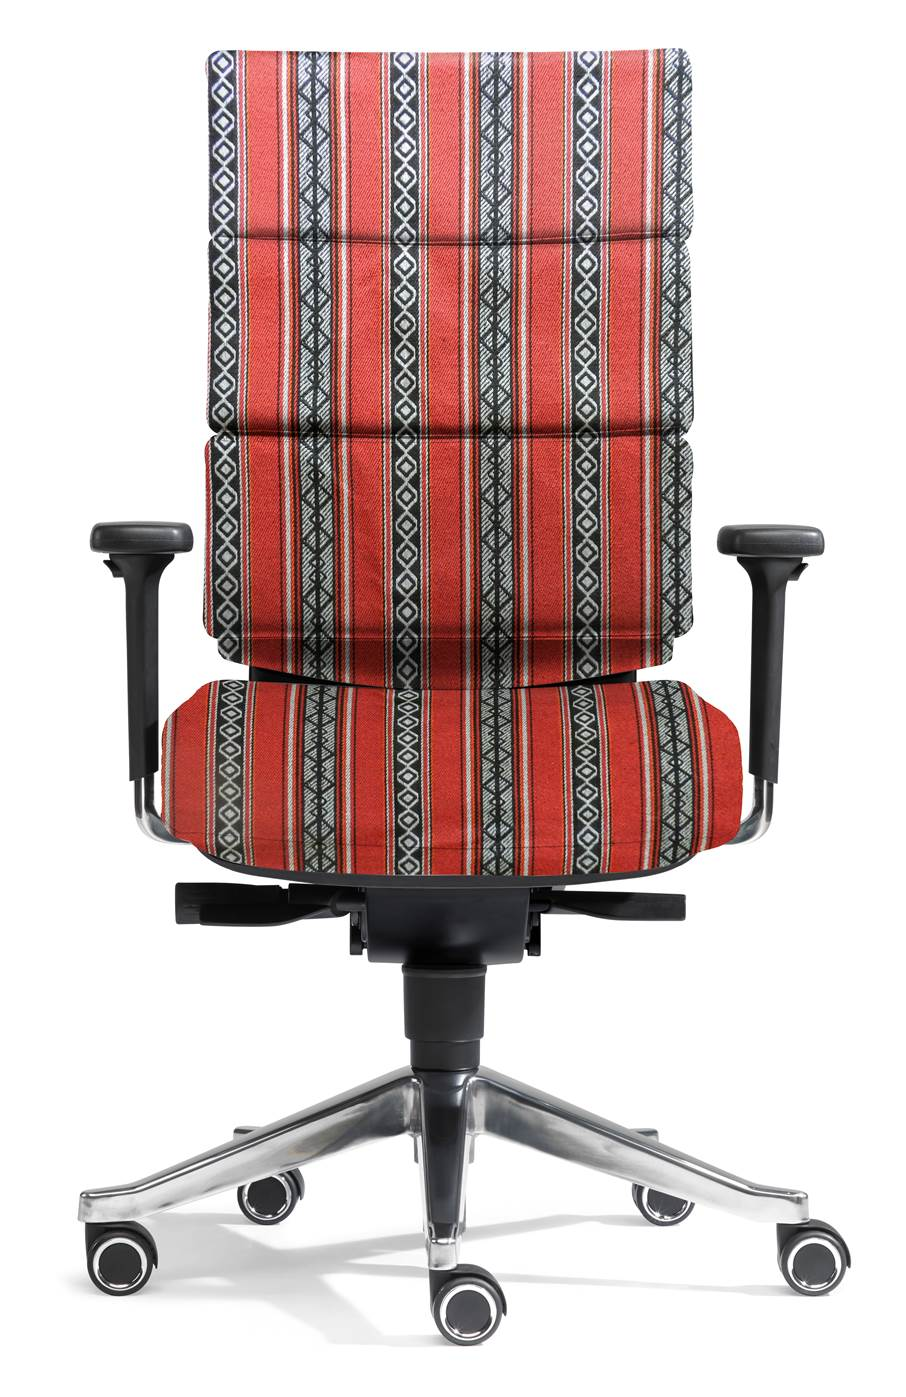 Ergonomic_Sitwell_Steifensand_office_chair_Fujairah